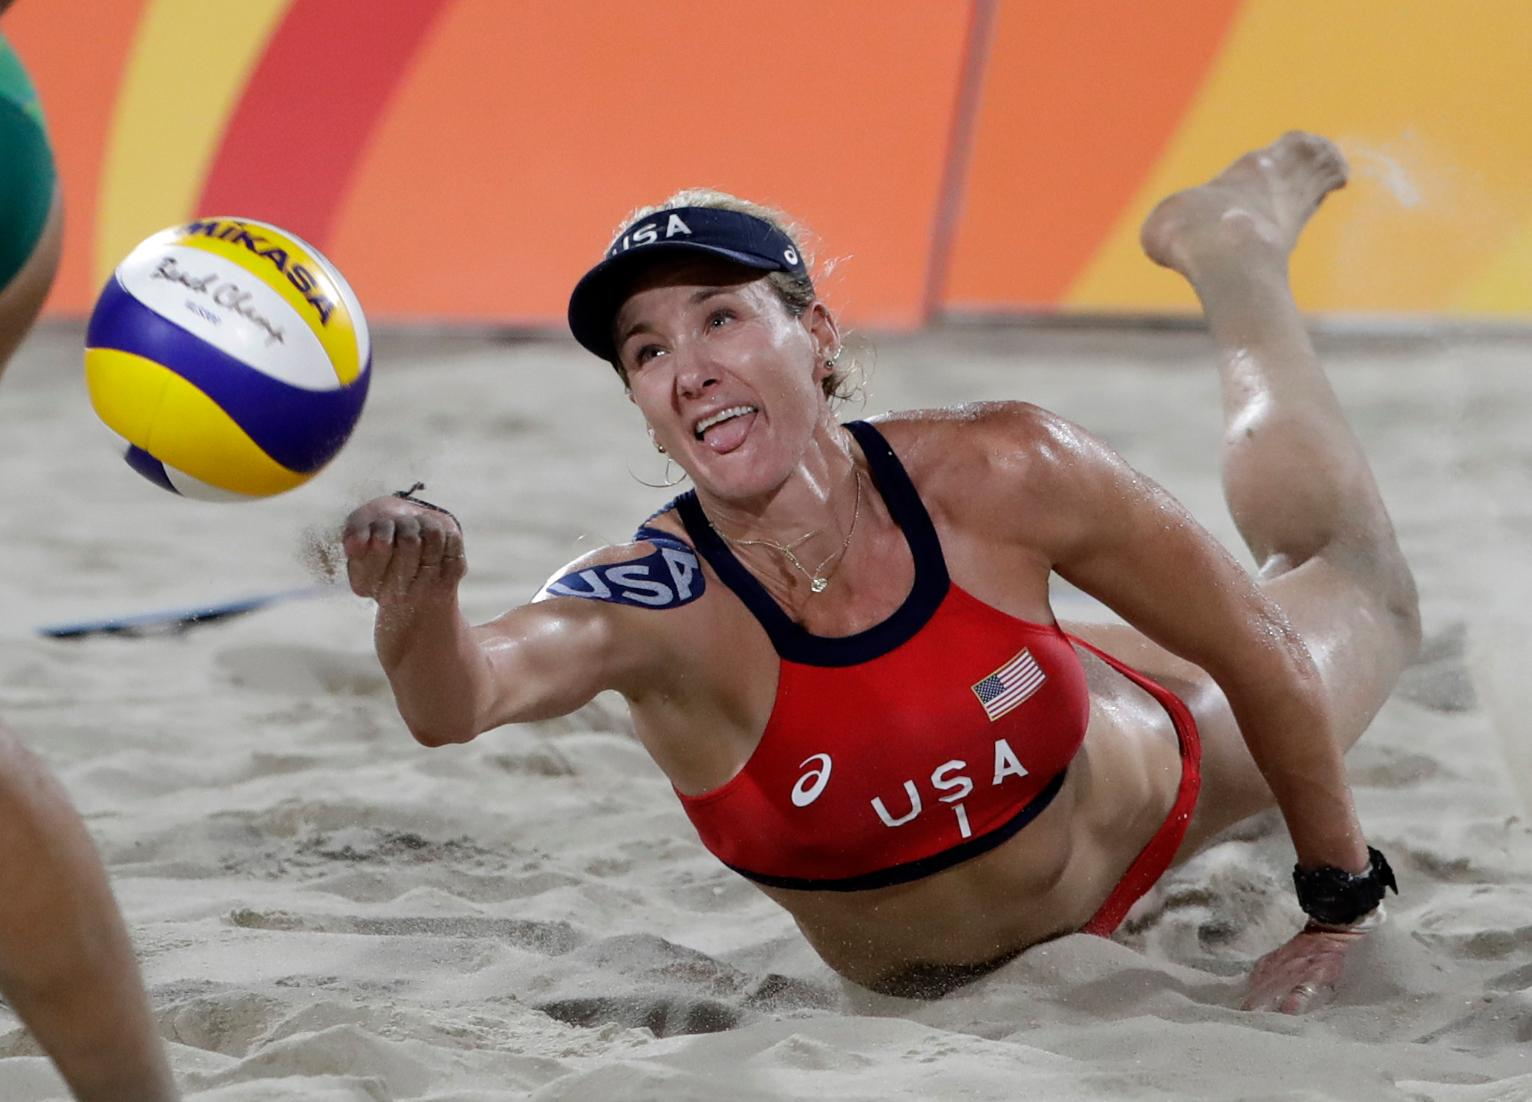 Used Cars In House Financing >> Making Waves on the Beach: Walsh Jennings Will Skip AVP Tour | Sports News | US News